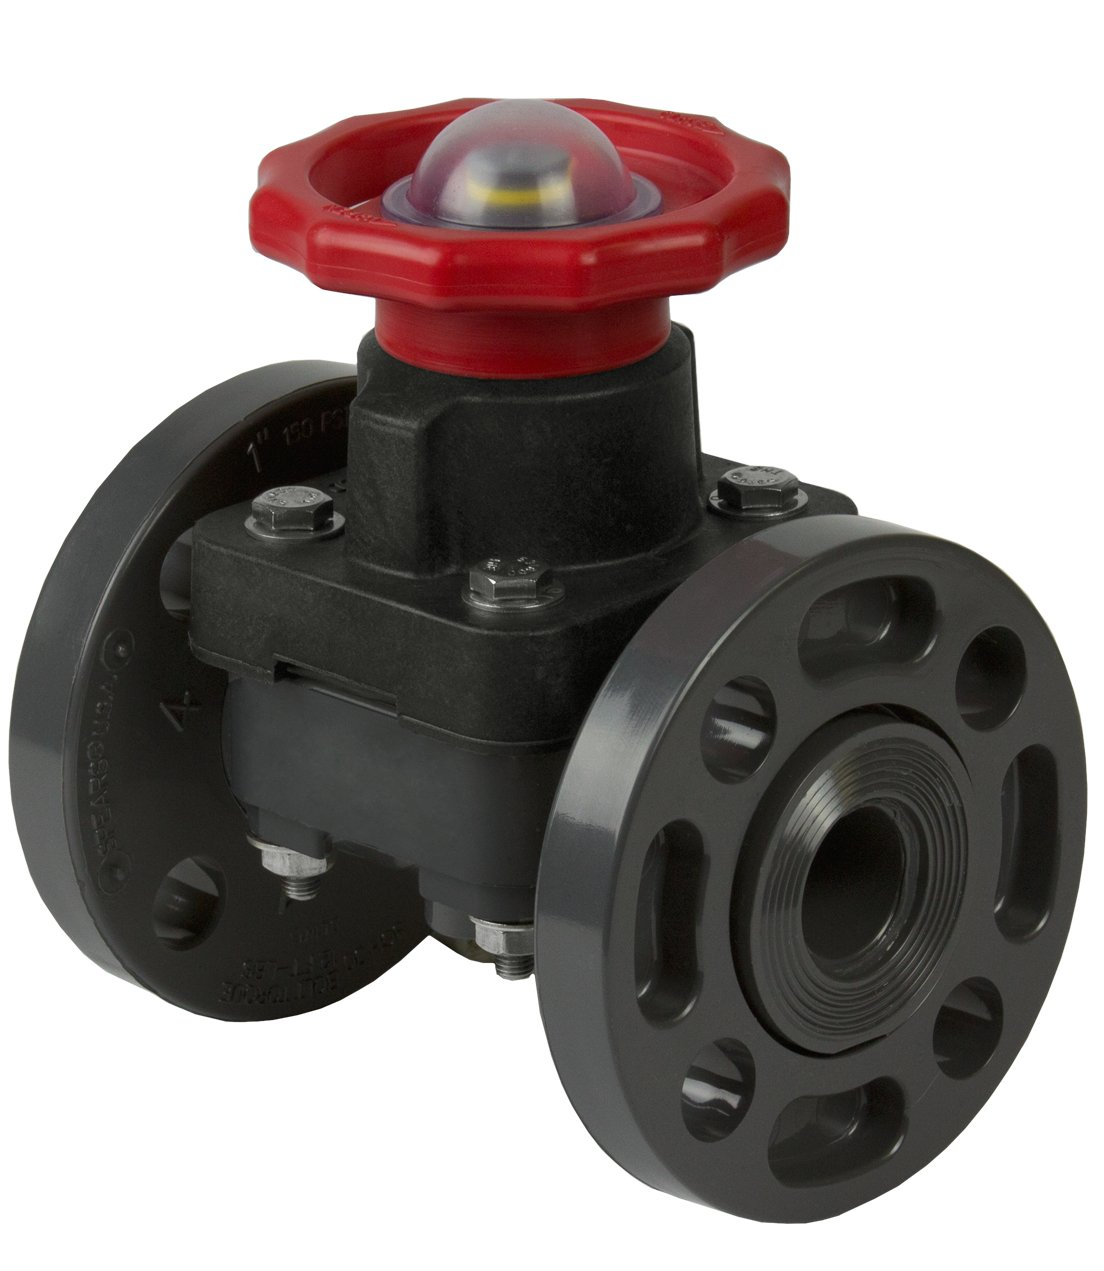 Spears 2723-025 PVC Schedule 80 Diaphragm Valve, Flanged, EPDM, 2-1/2-Inch